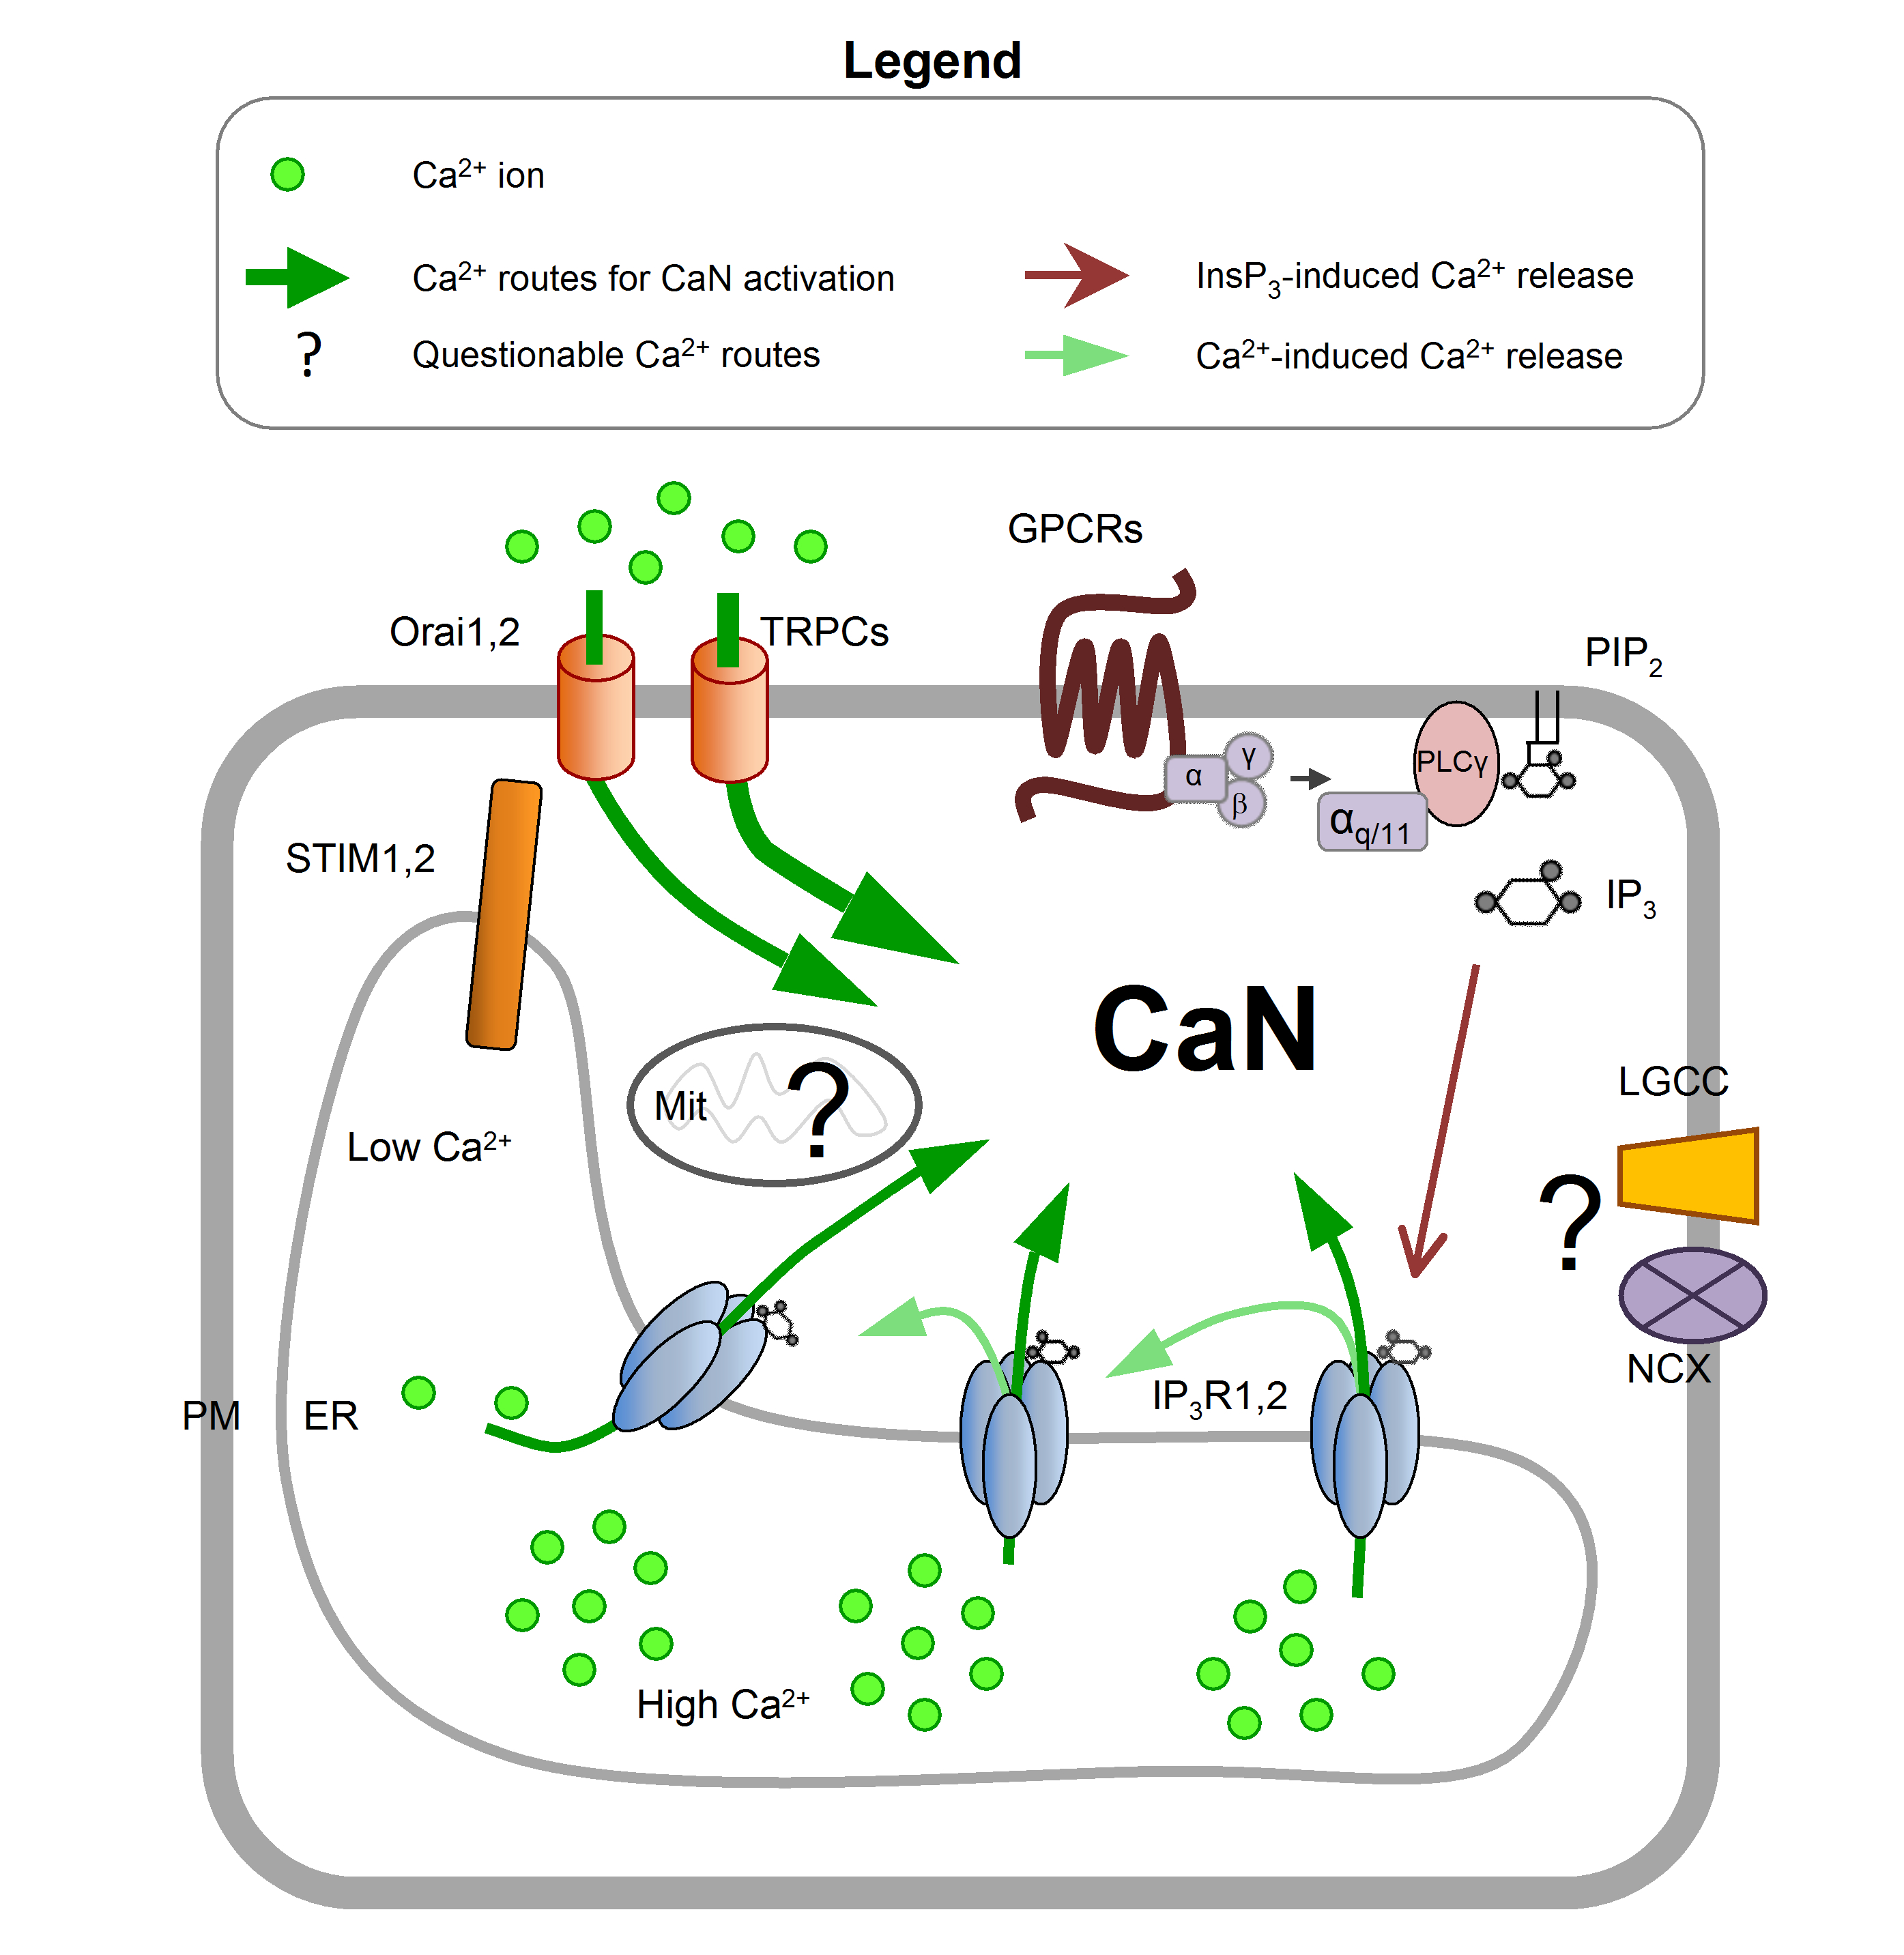 Figure 1. Astroglial Ca2+ routes for CaN activation The principal mechanism of CaN activation in astrocytes is represented by the activation of the seven transmembrane domains G-protein coupled receptors (GPCR), which generates the second messenger InsP3 that in turn activates the InsP3Rs on the ER membrane (depicted as thin green arrows). Once activated, the InsP3Rs induce the store-operated Ca2+ entry, which involves the interaction between the STIMs molecules onto the ER and the Orai channels located into the plasma membrane. That recruits the transient receptor potential (TRP) channels to induce a massive Ca2+ entry (depicted as bold green arrow). Ca2+-induced Ca2+ release (depicted as light-green thin arrows) may also be involved in the amplification of Ca2+ signal necessary for CaN activation, whereas the roles of mitochondrial Ca2+ uptake (Mit), ligand gated Ca2+ channels (LGCC) and sodium/calcium exchanger (NCX) is not clear. Note that IP3R1 has been studied in cultured astrocytes while in intact tissue IP3R2 is the principal isoform